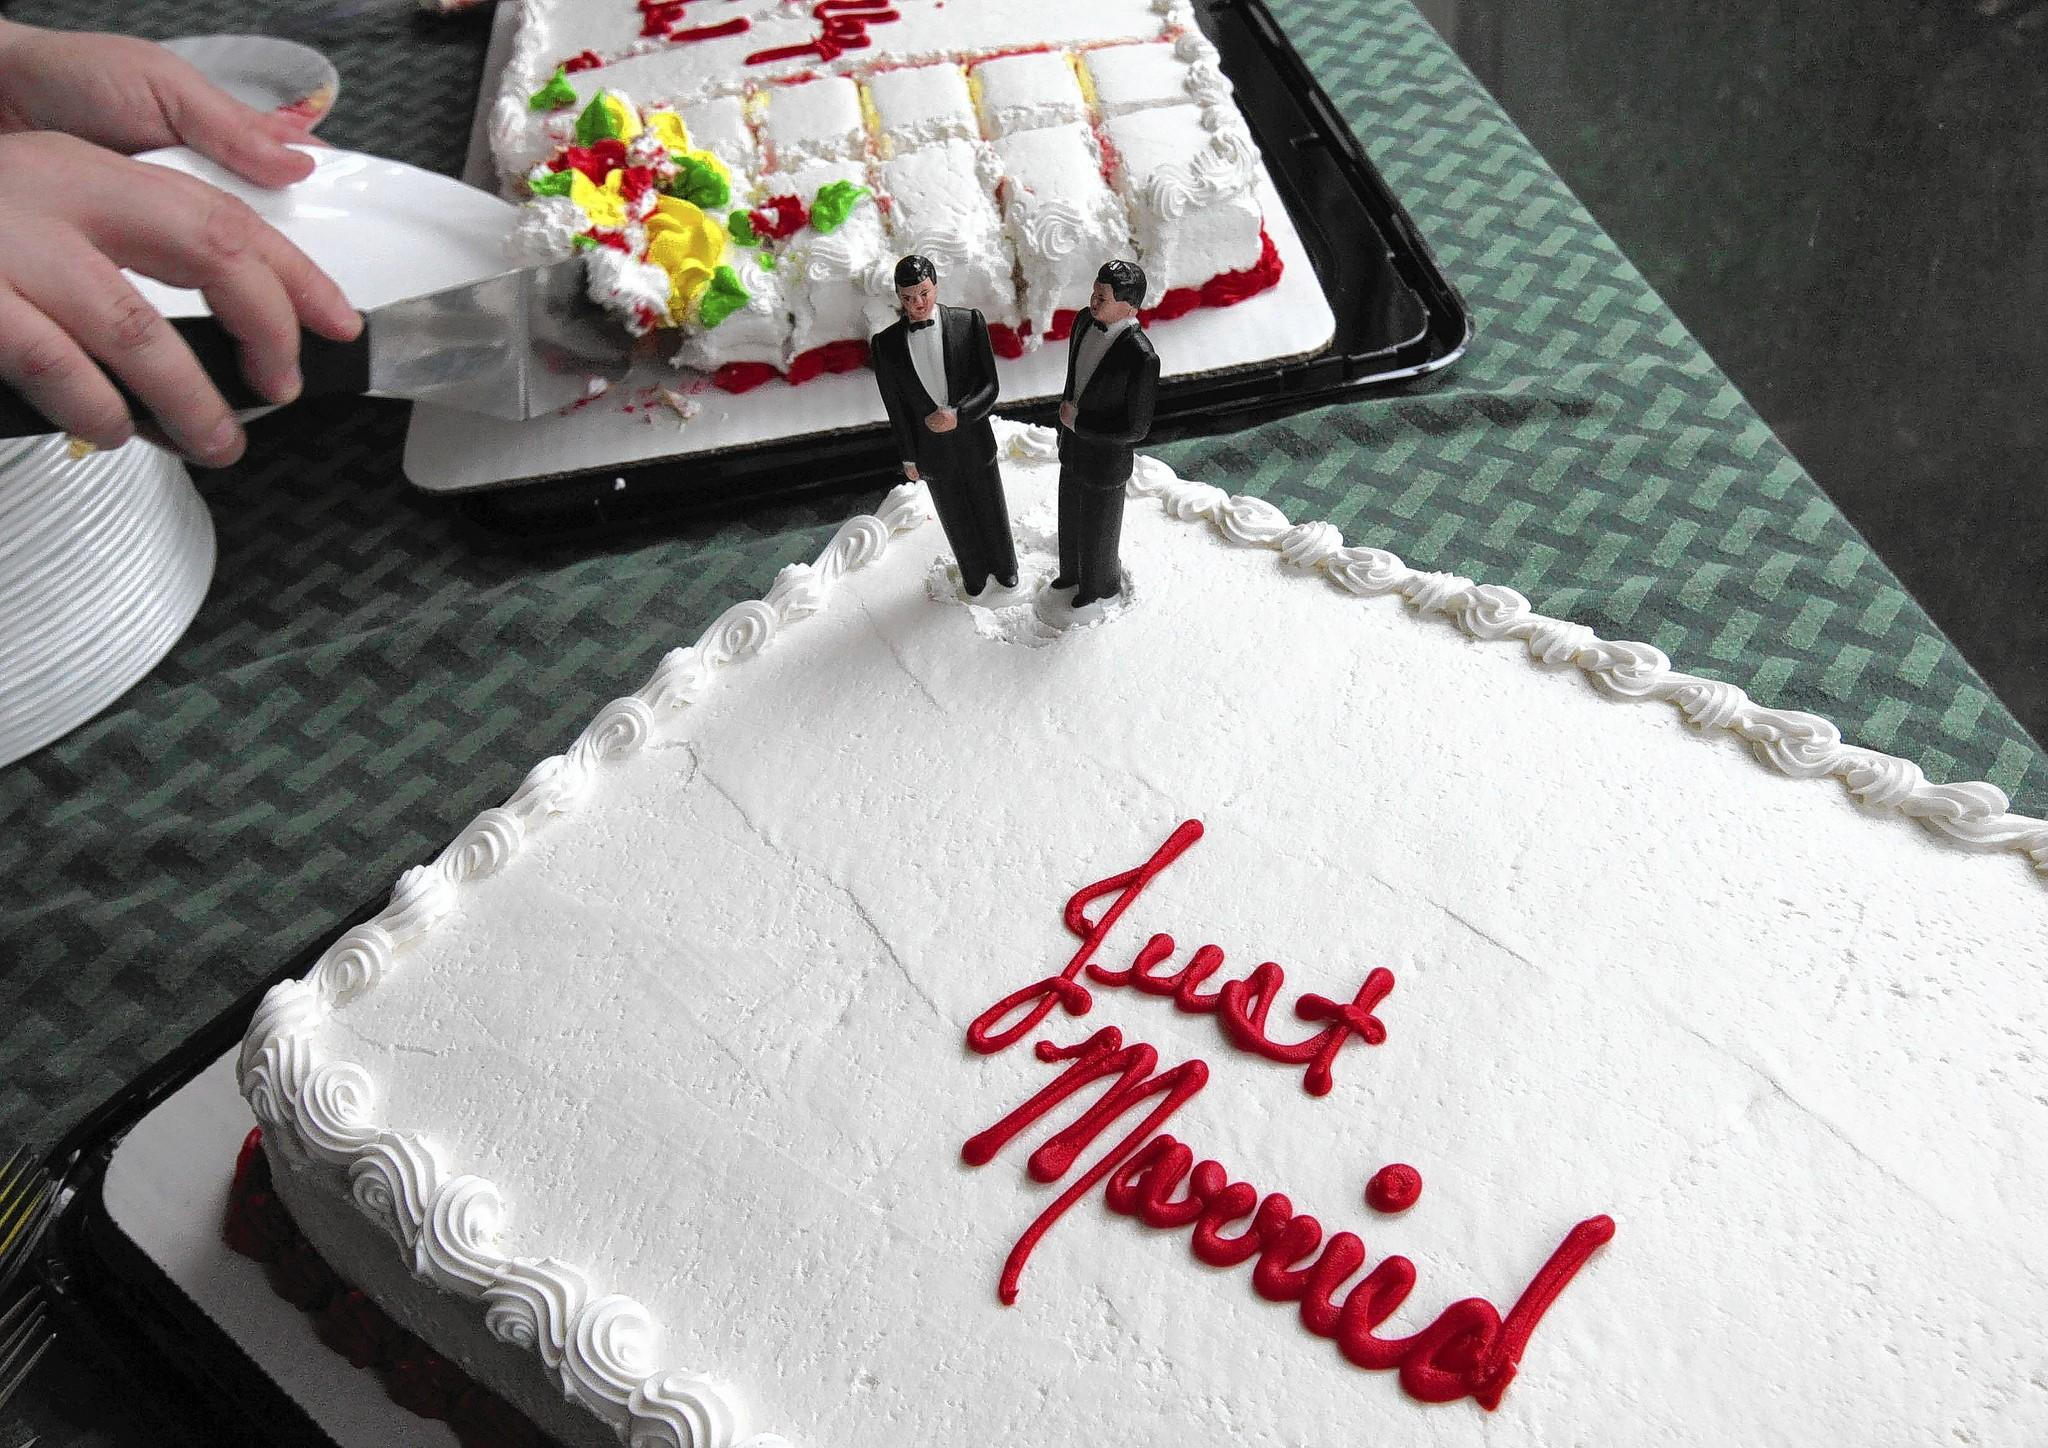 The two little grooms make this a gay wedding cake.